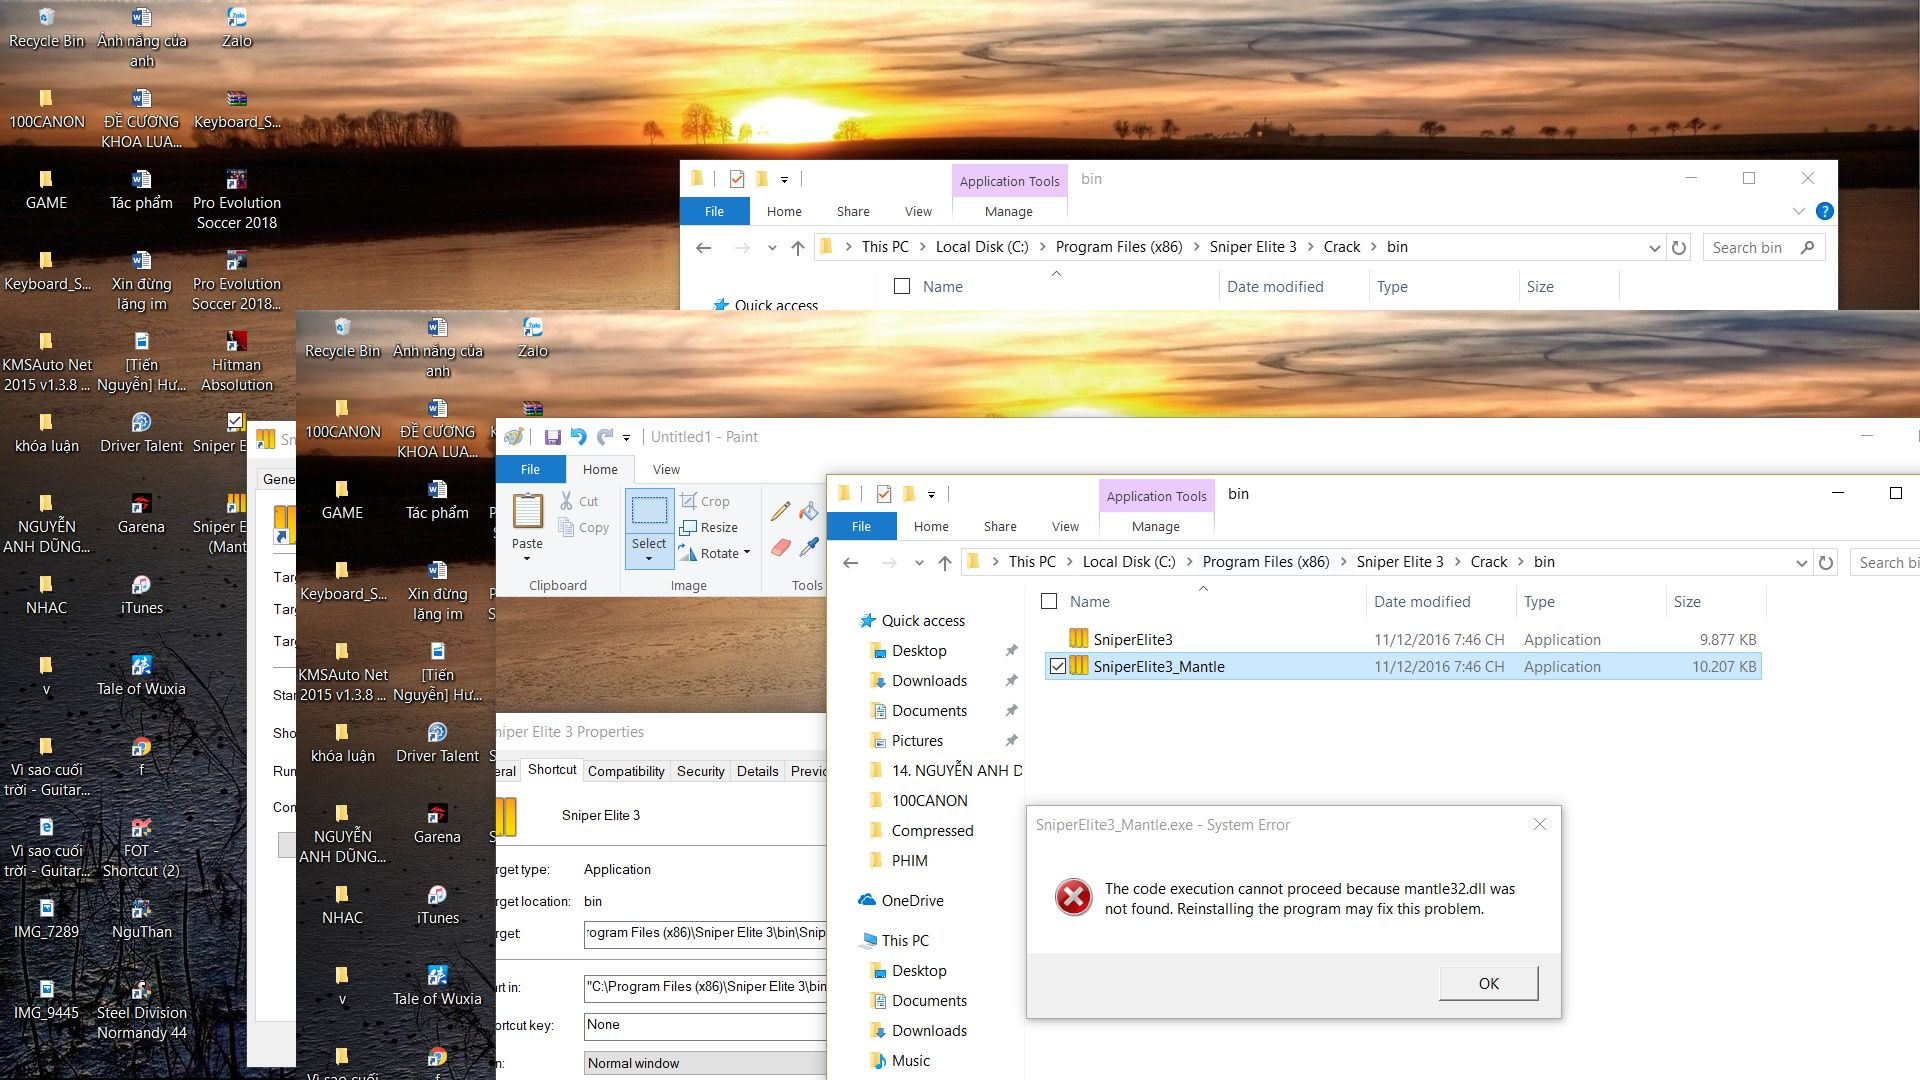 adwcleaner exe is not a valid win32 application